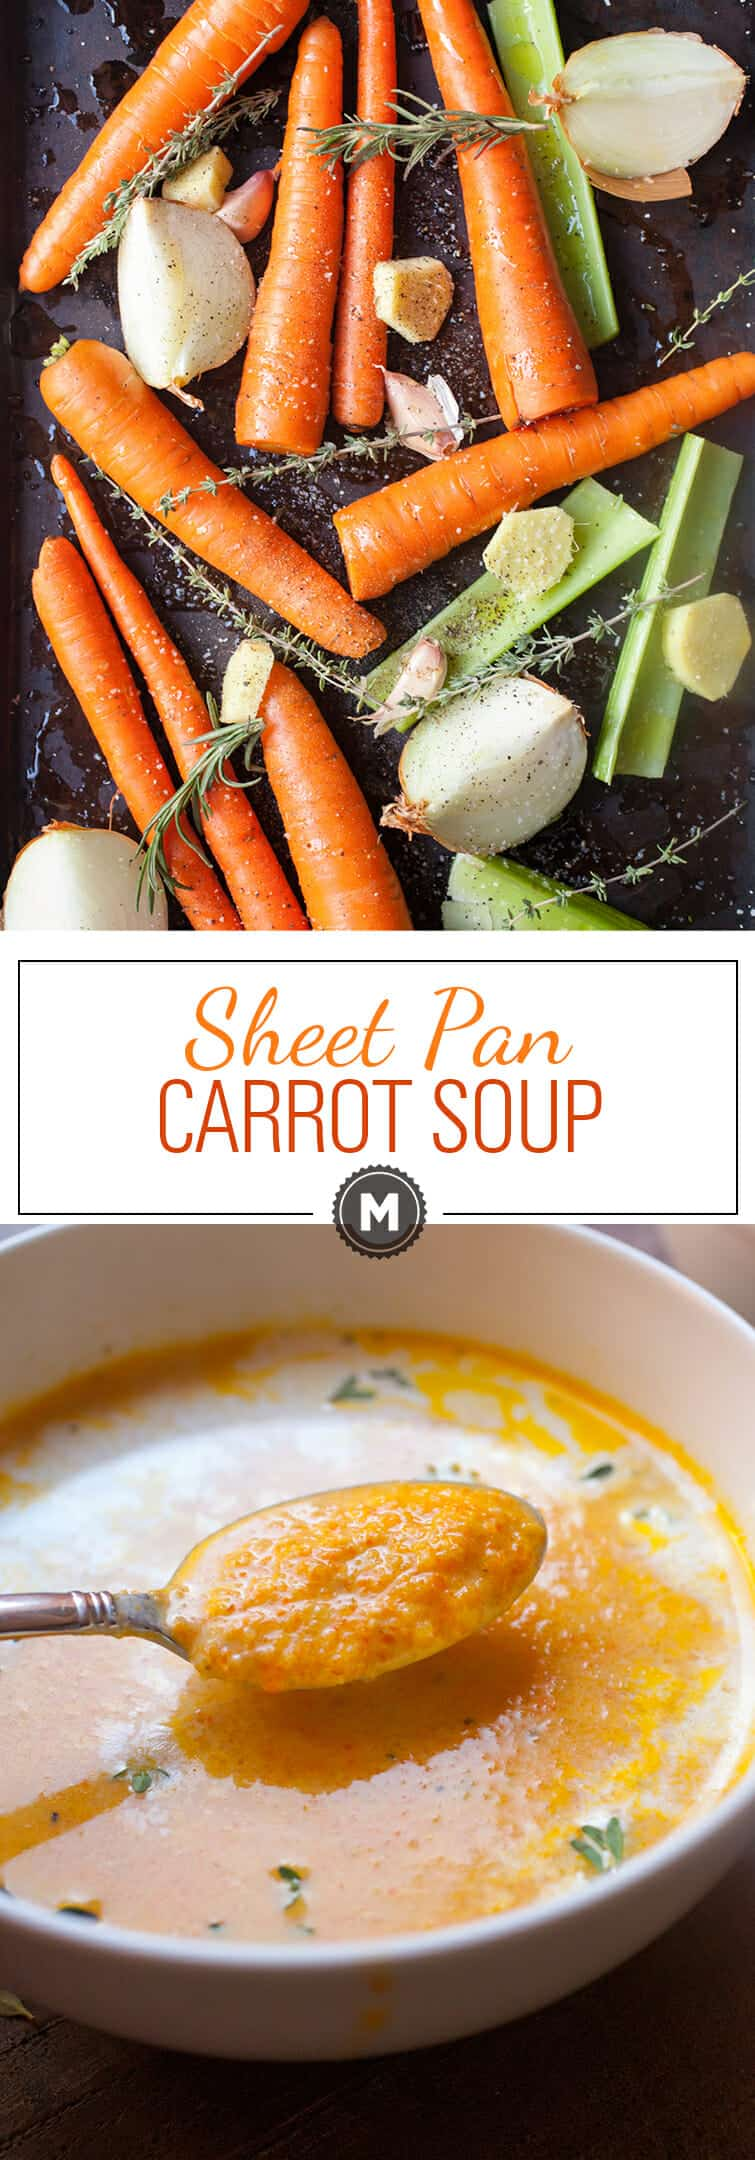 Sheet Pan Carrot Soup: This rich and flavorful carrot soup is SO easy to make. Roast all the ingredients and blend them up! | macheesmo.com